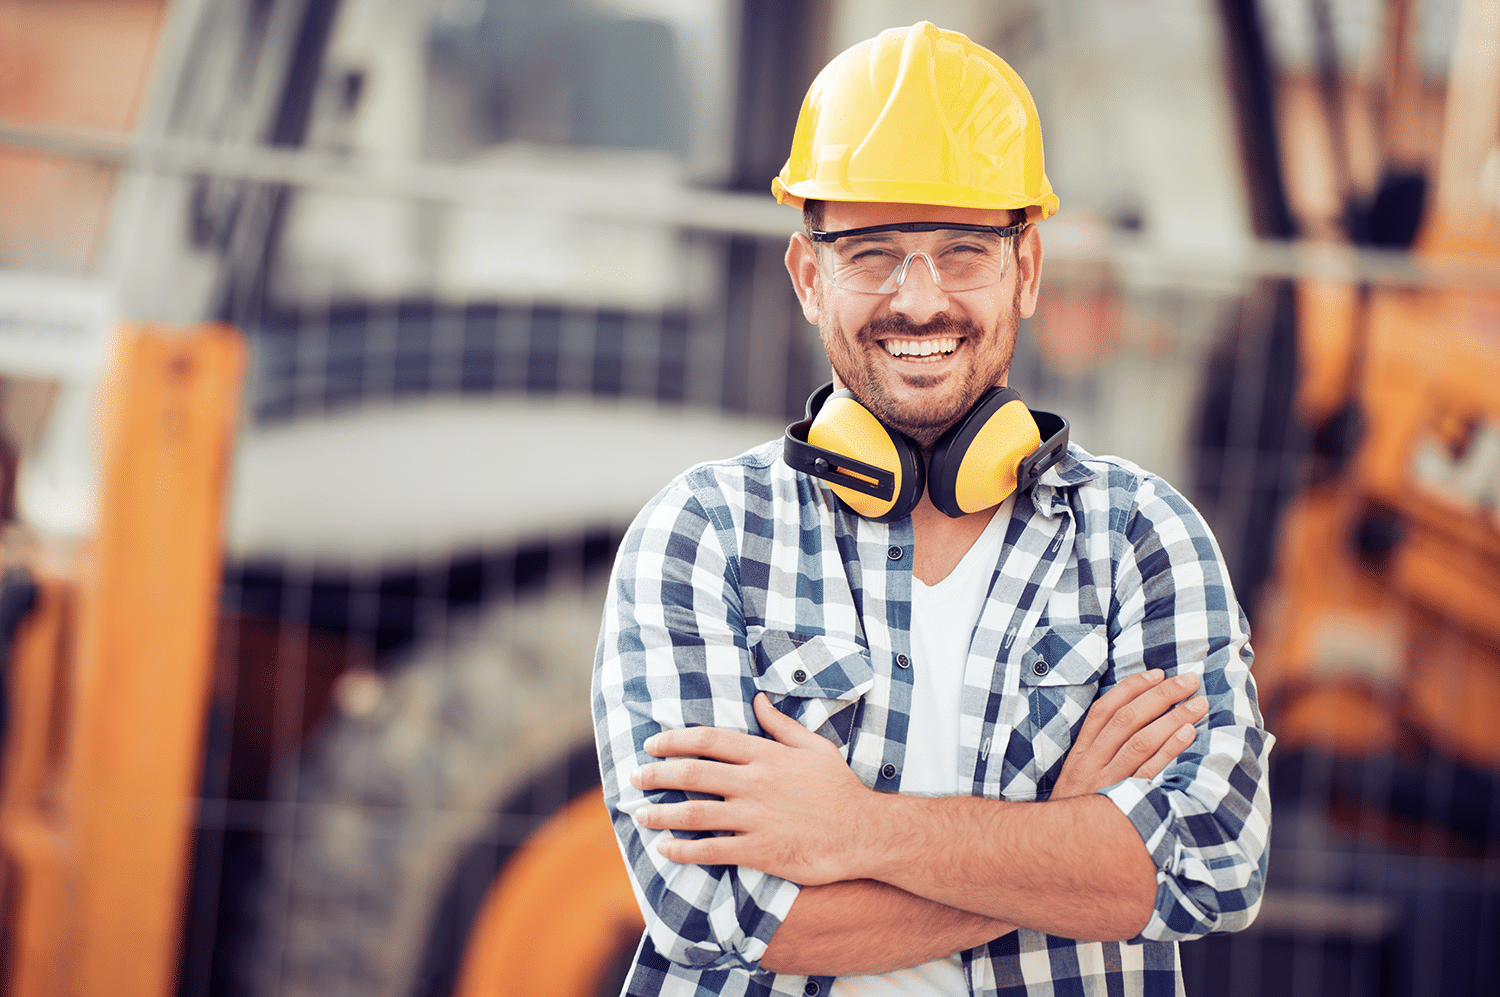 Supply Solutions   Safety Supplies   Hard Hat   Ear Protection   Paducah   Kentucky